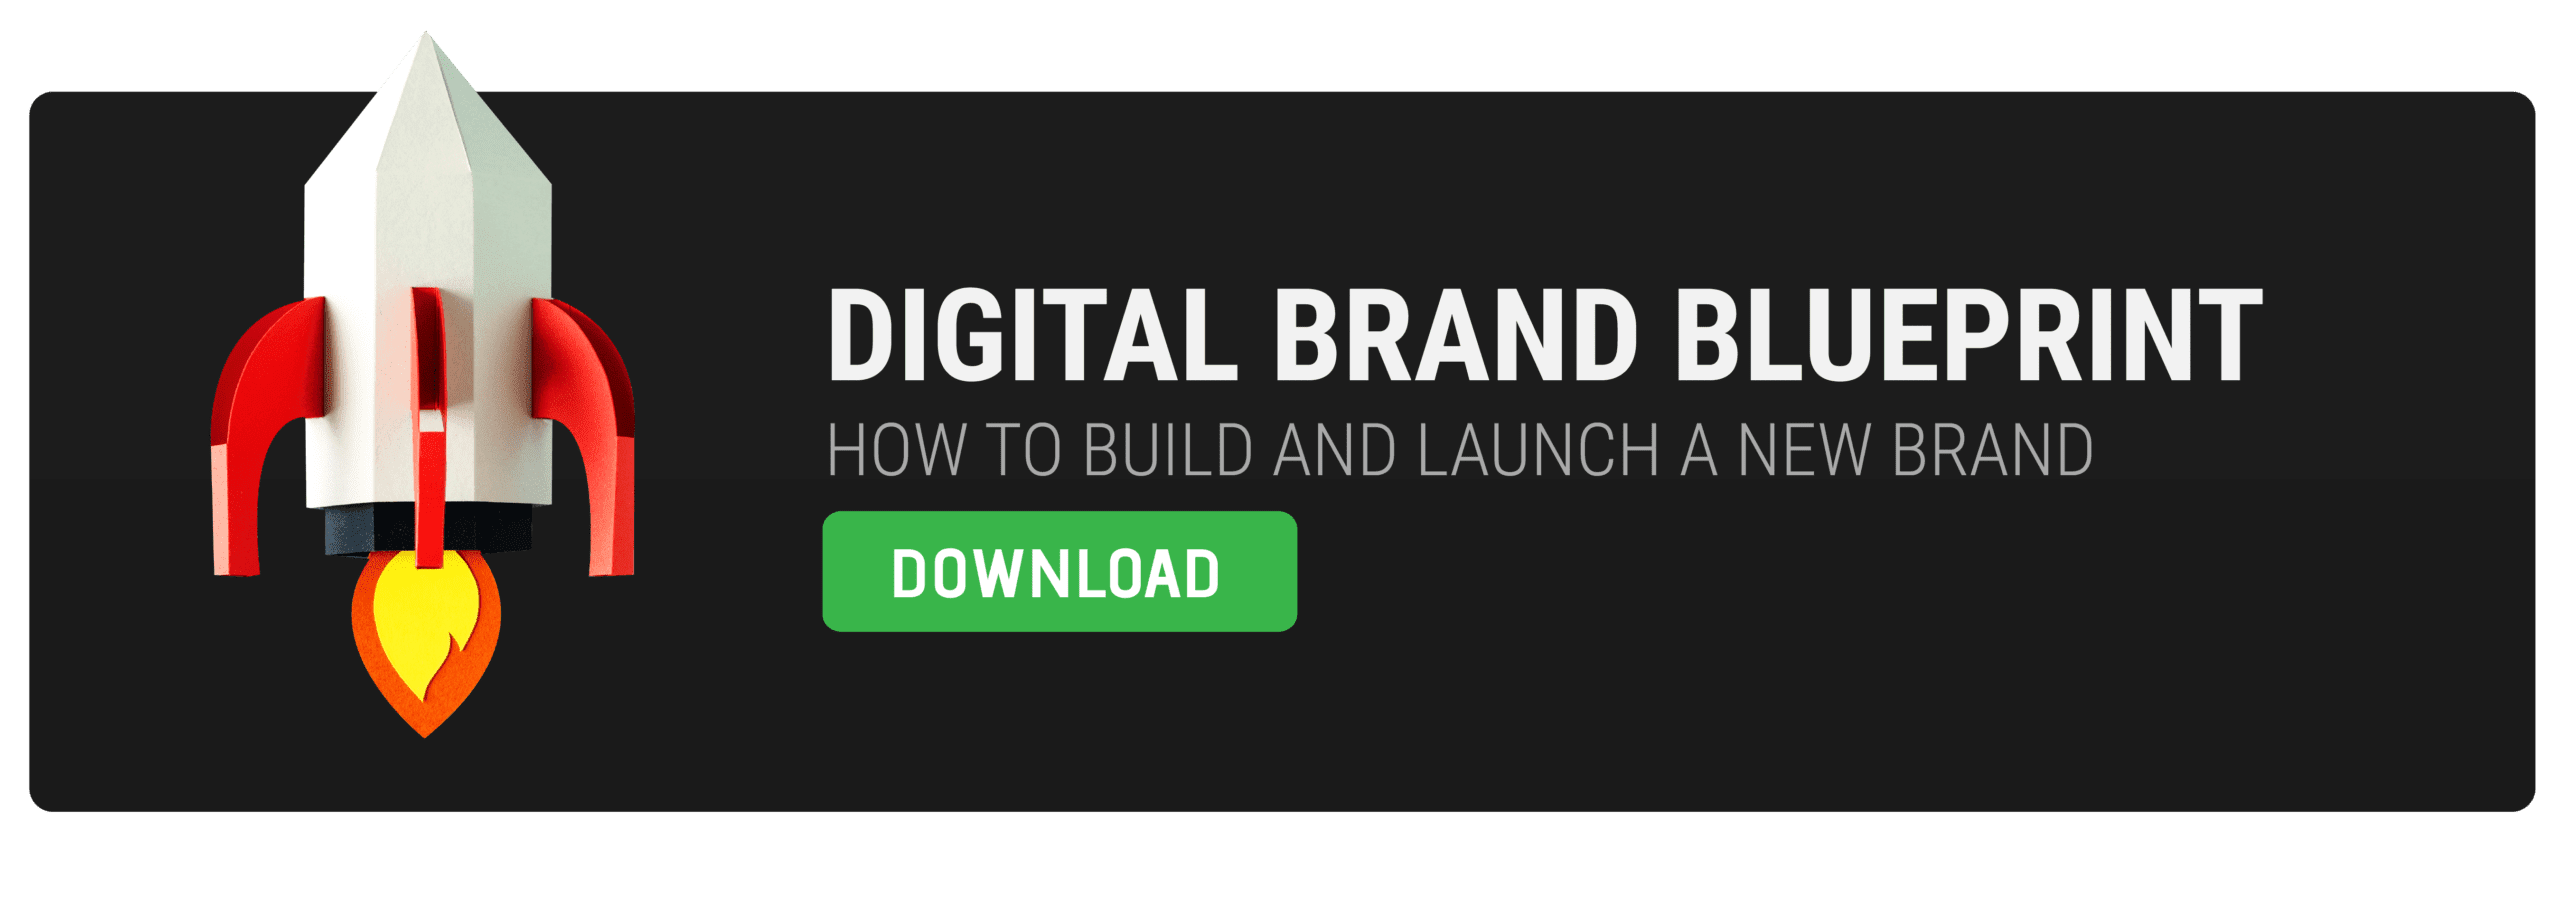 Building A Digital Brand Take A Look Inside The PDF. Download The Digital Branding Guide Banner.